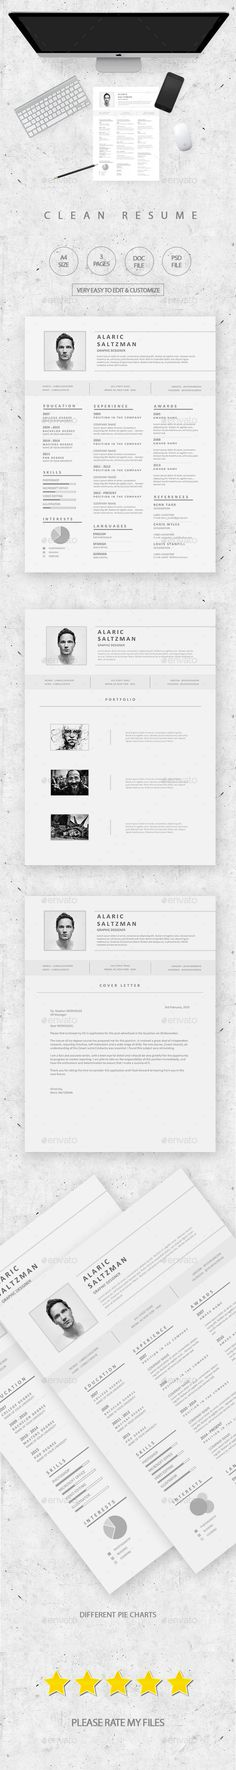 Professional Resume Design Word Template with Cover Letter - resume on word